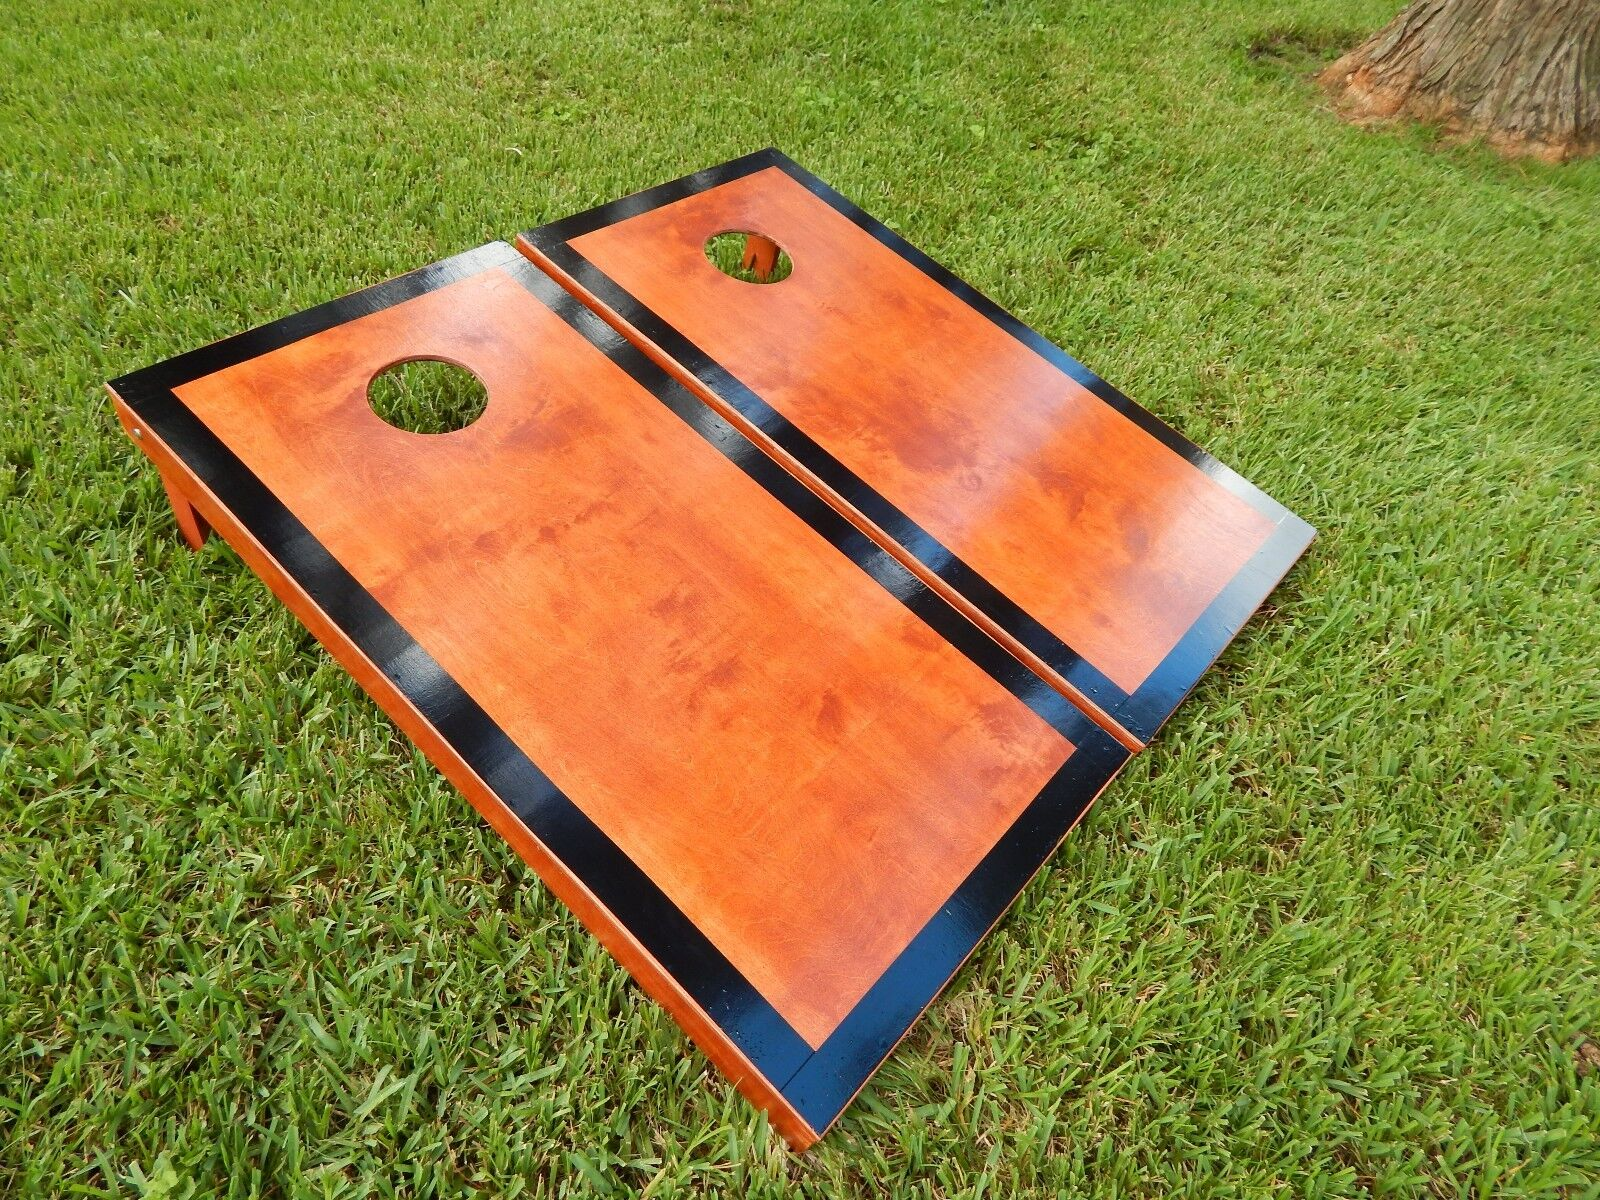 buy now - Cornhole Boards For Sale